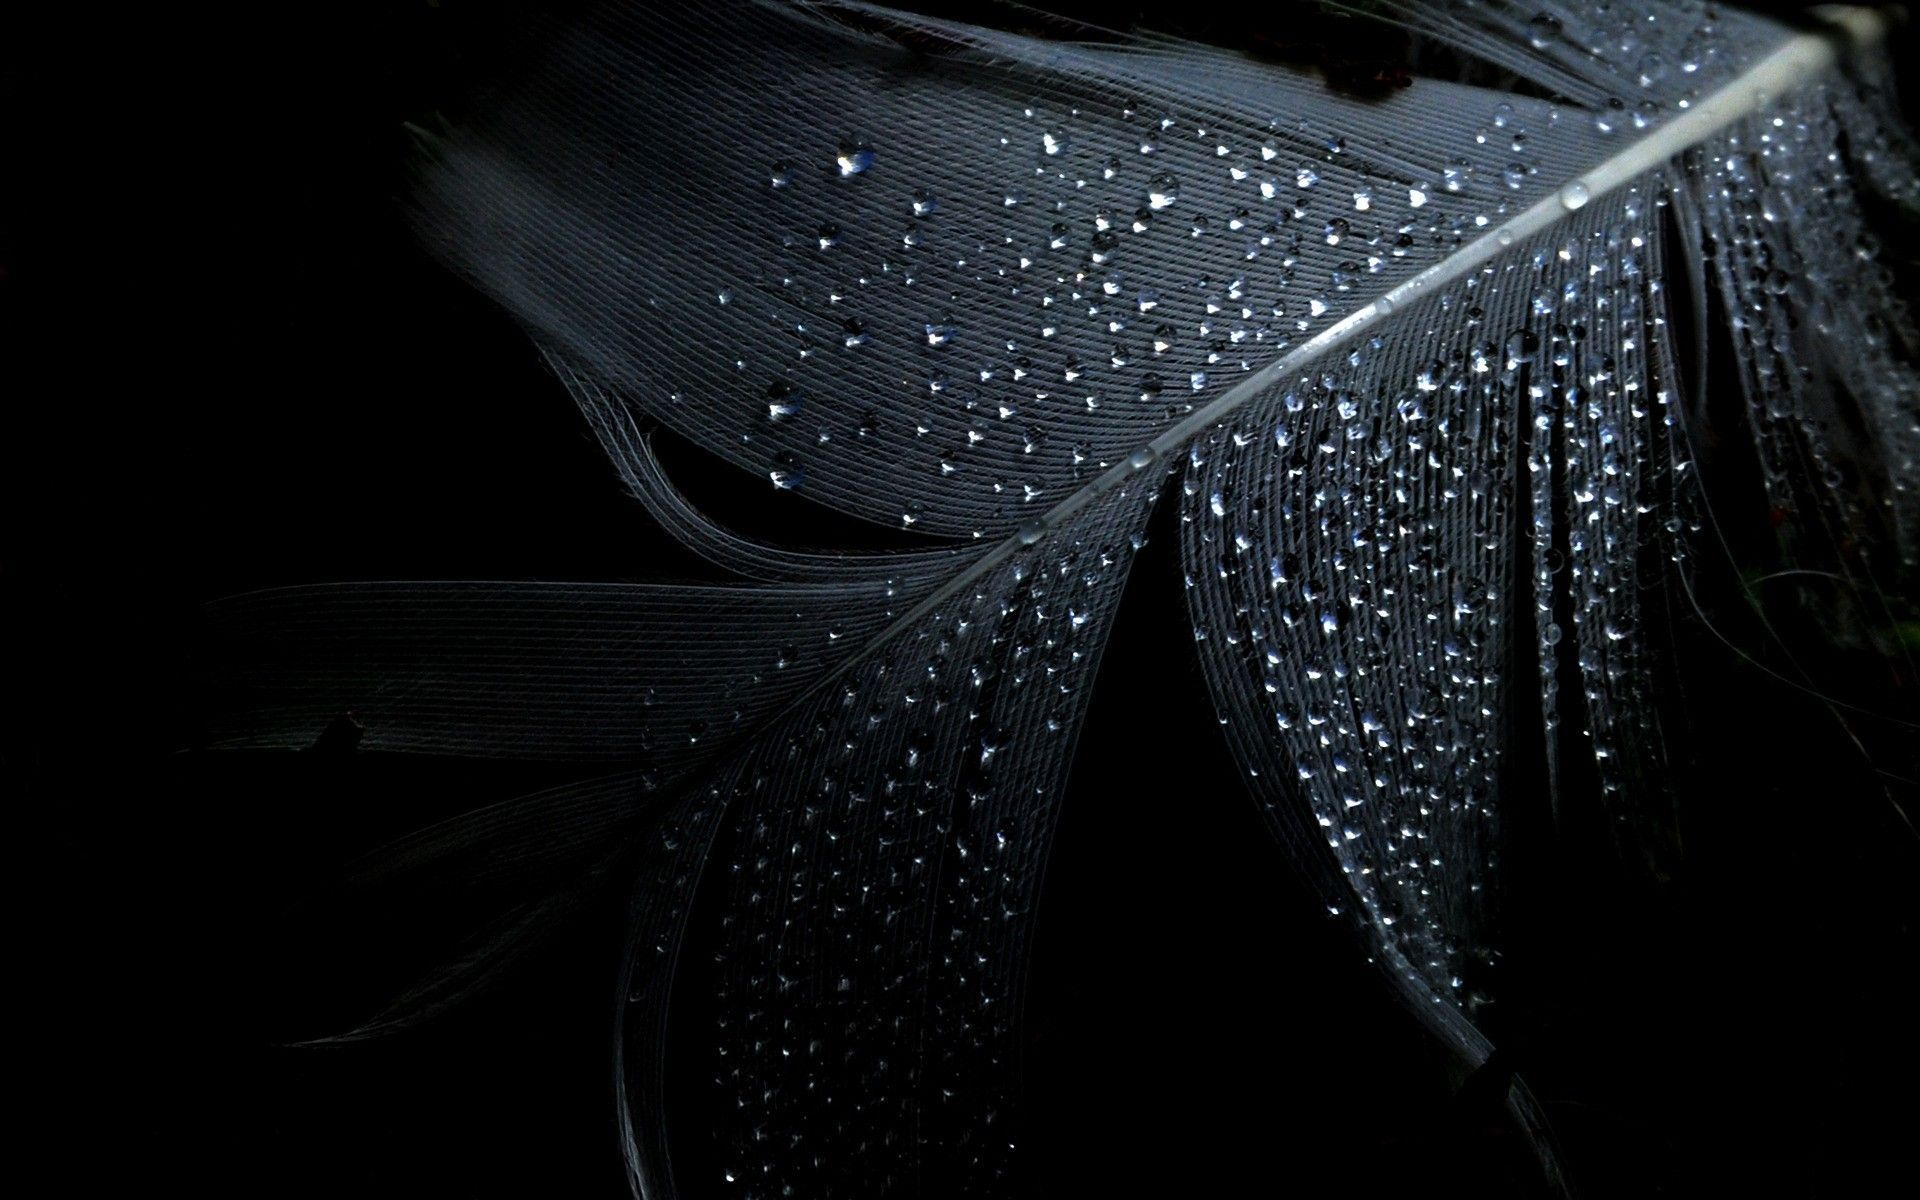 Black Dark Leaf Wallpaper Httpwww 0wallpapers Com2879 Black